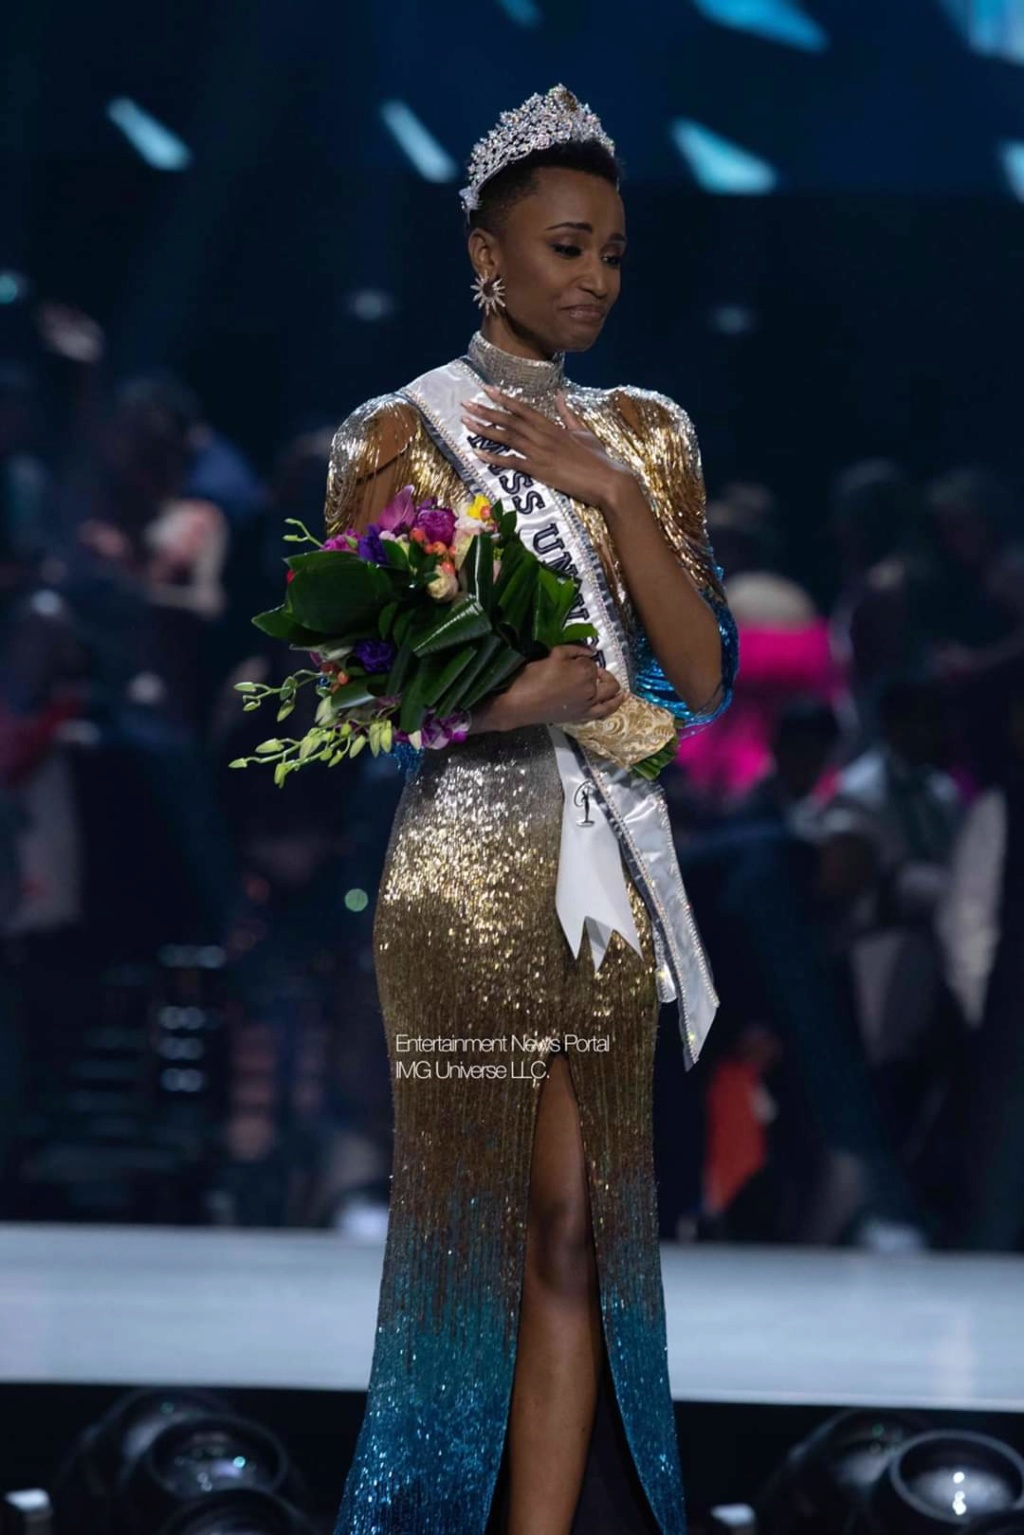 The Official Thread Of Miss Universe 2019 : Zozibini Tunzi of South Africa Fb_14416